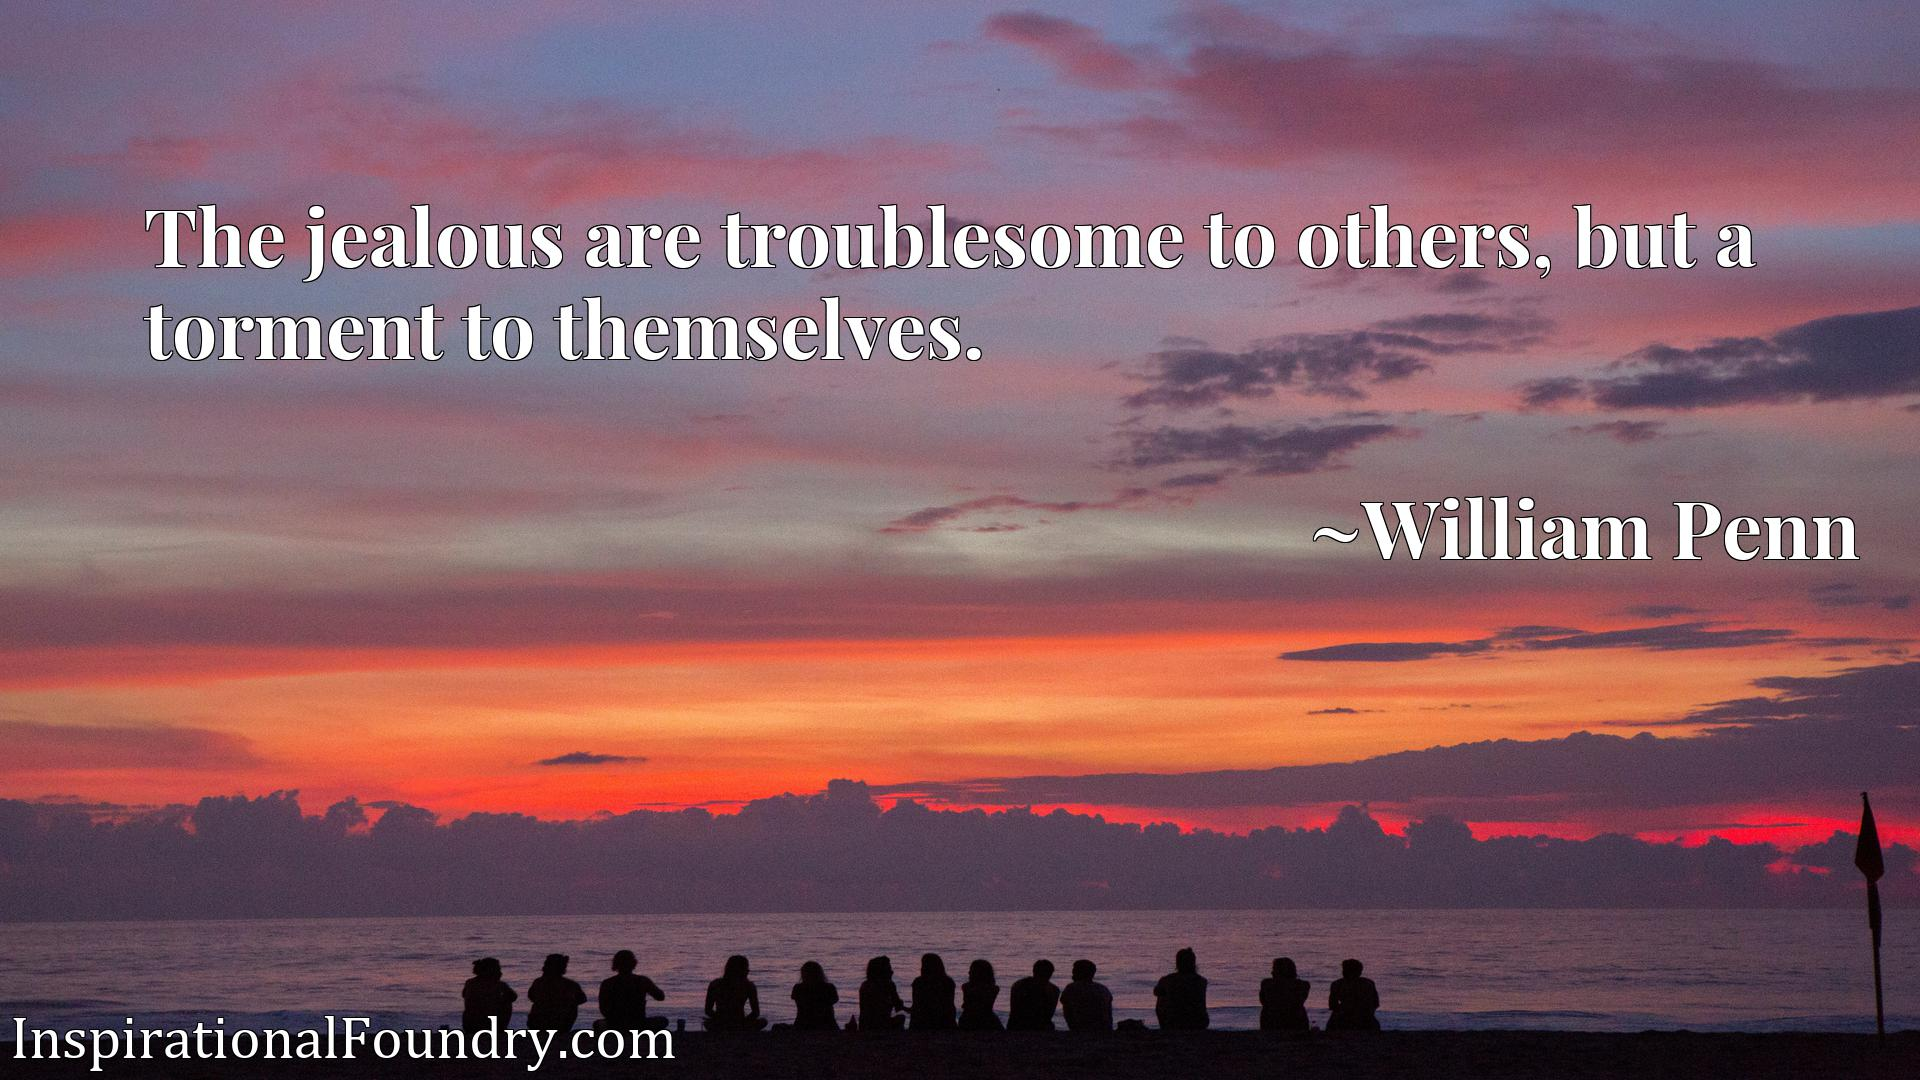 The jealous are troublesome to others, but a torment to themselves.